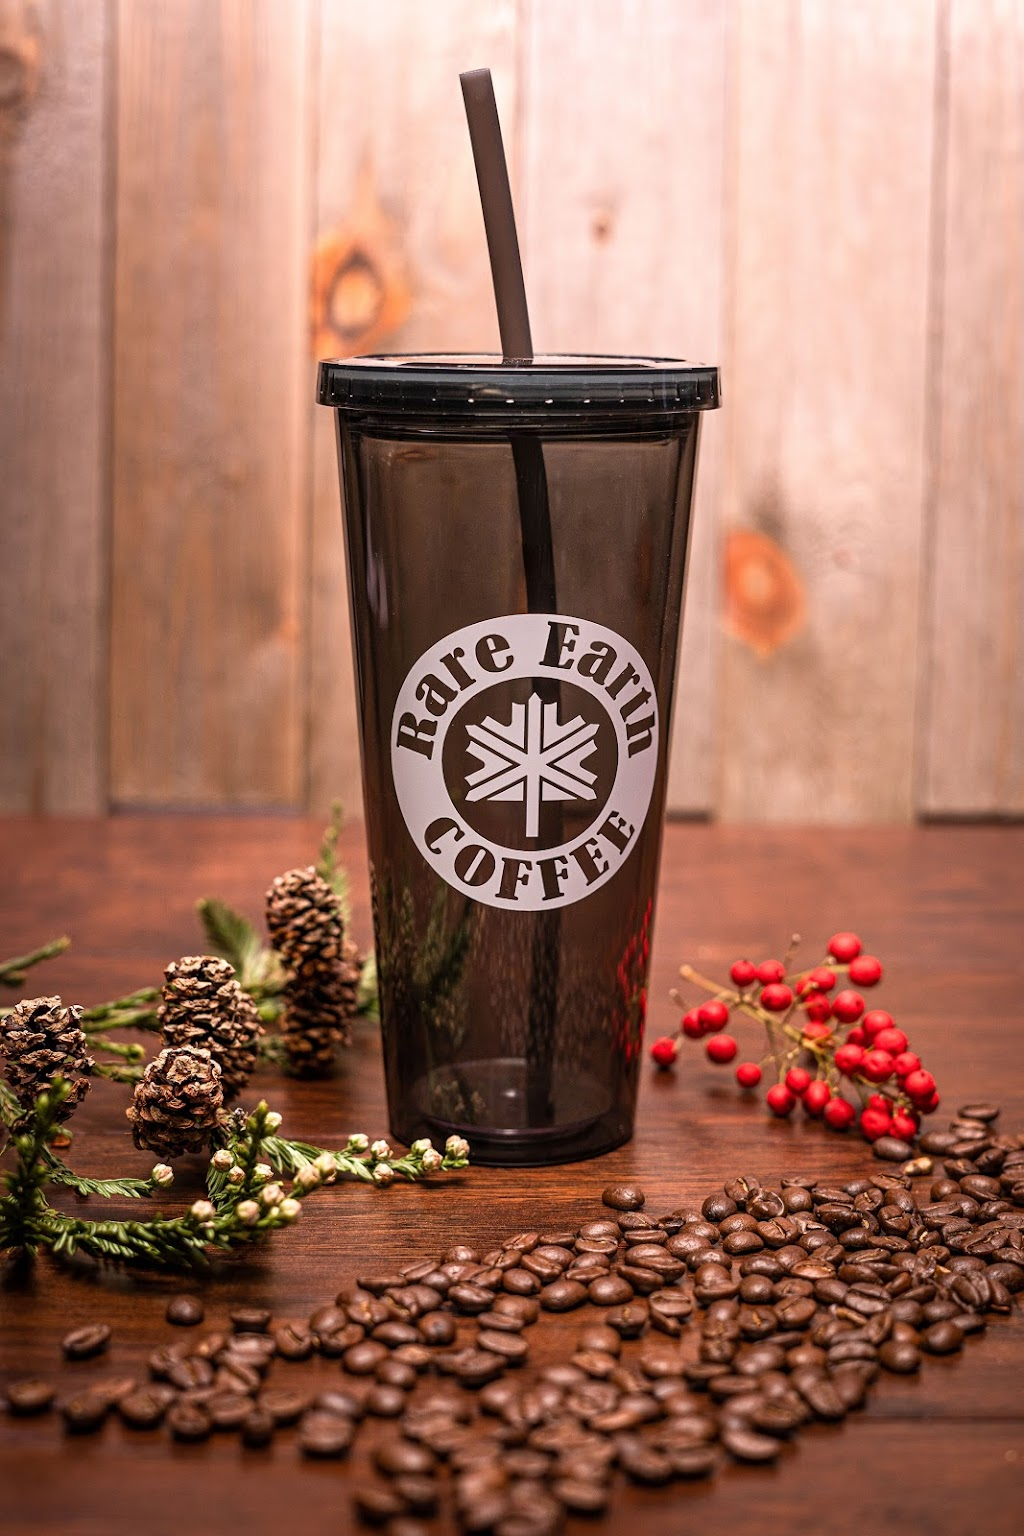 Rare Earth Coffee - cafe  | Photo 5 of 10 | Address: 7505 N Willow Ave, Fresno, CA 93720, USA | Phone: (559) 940-7538